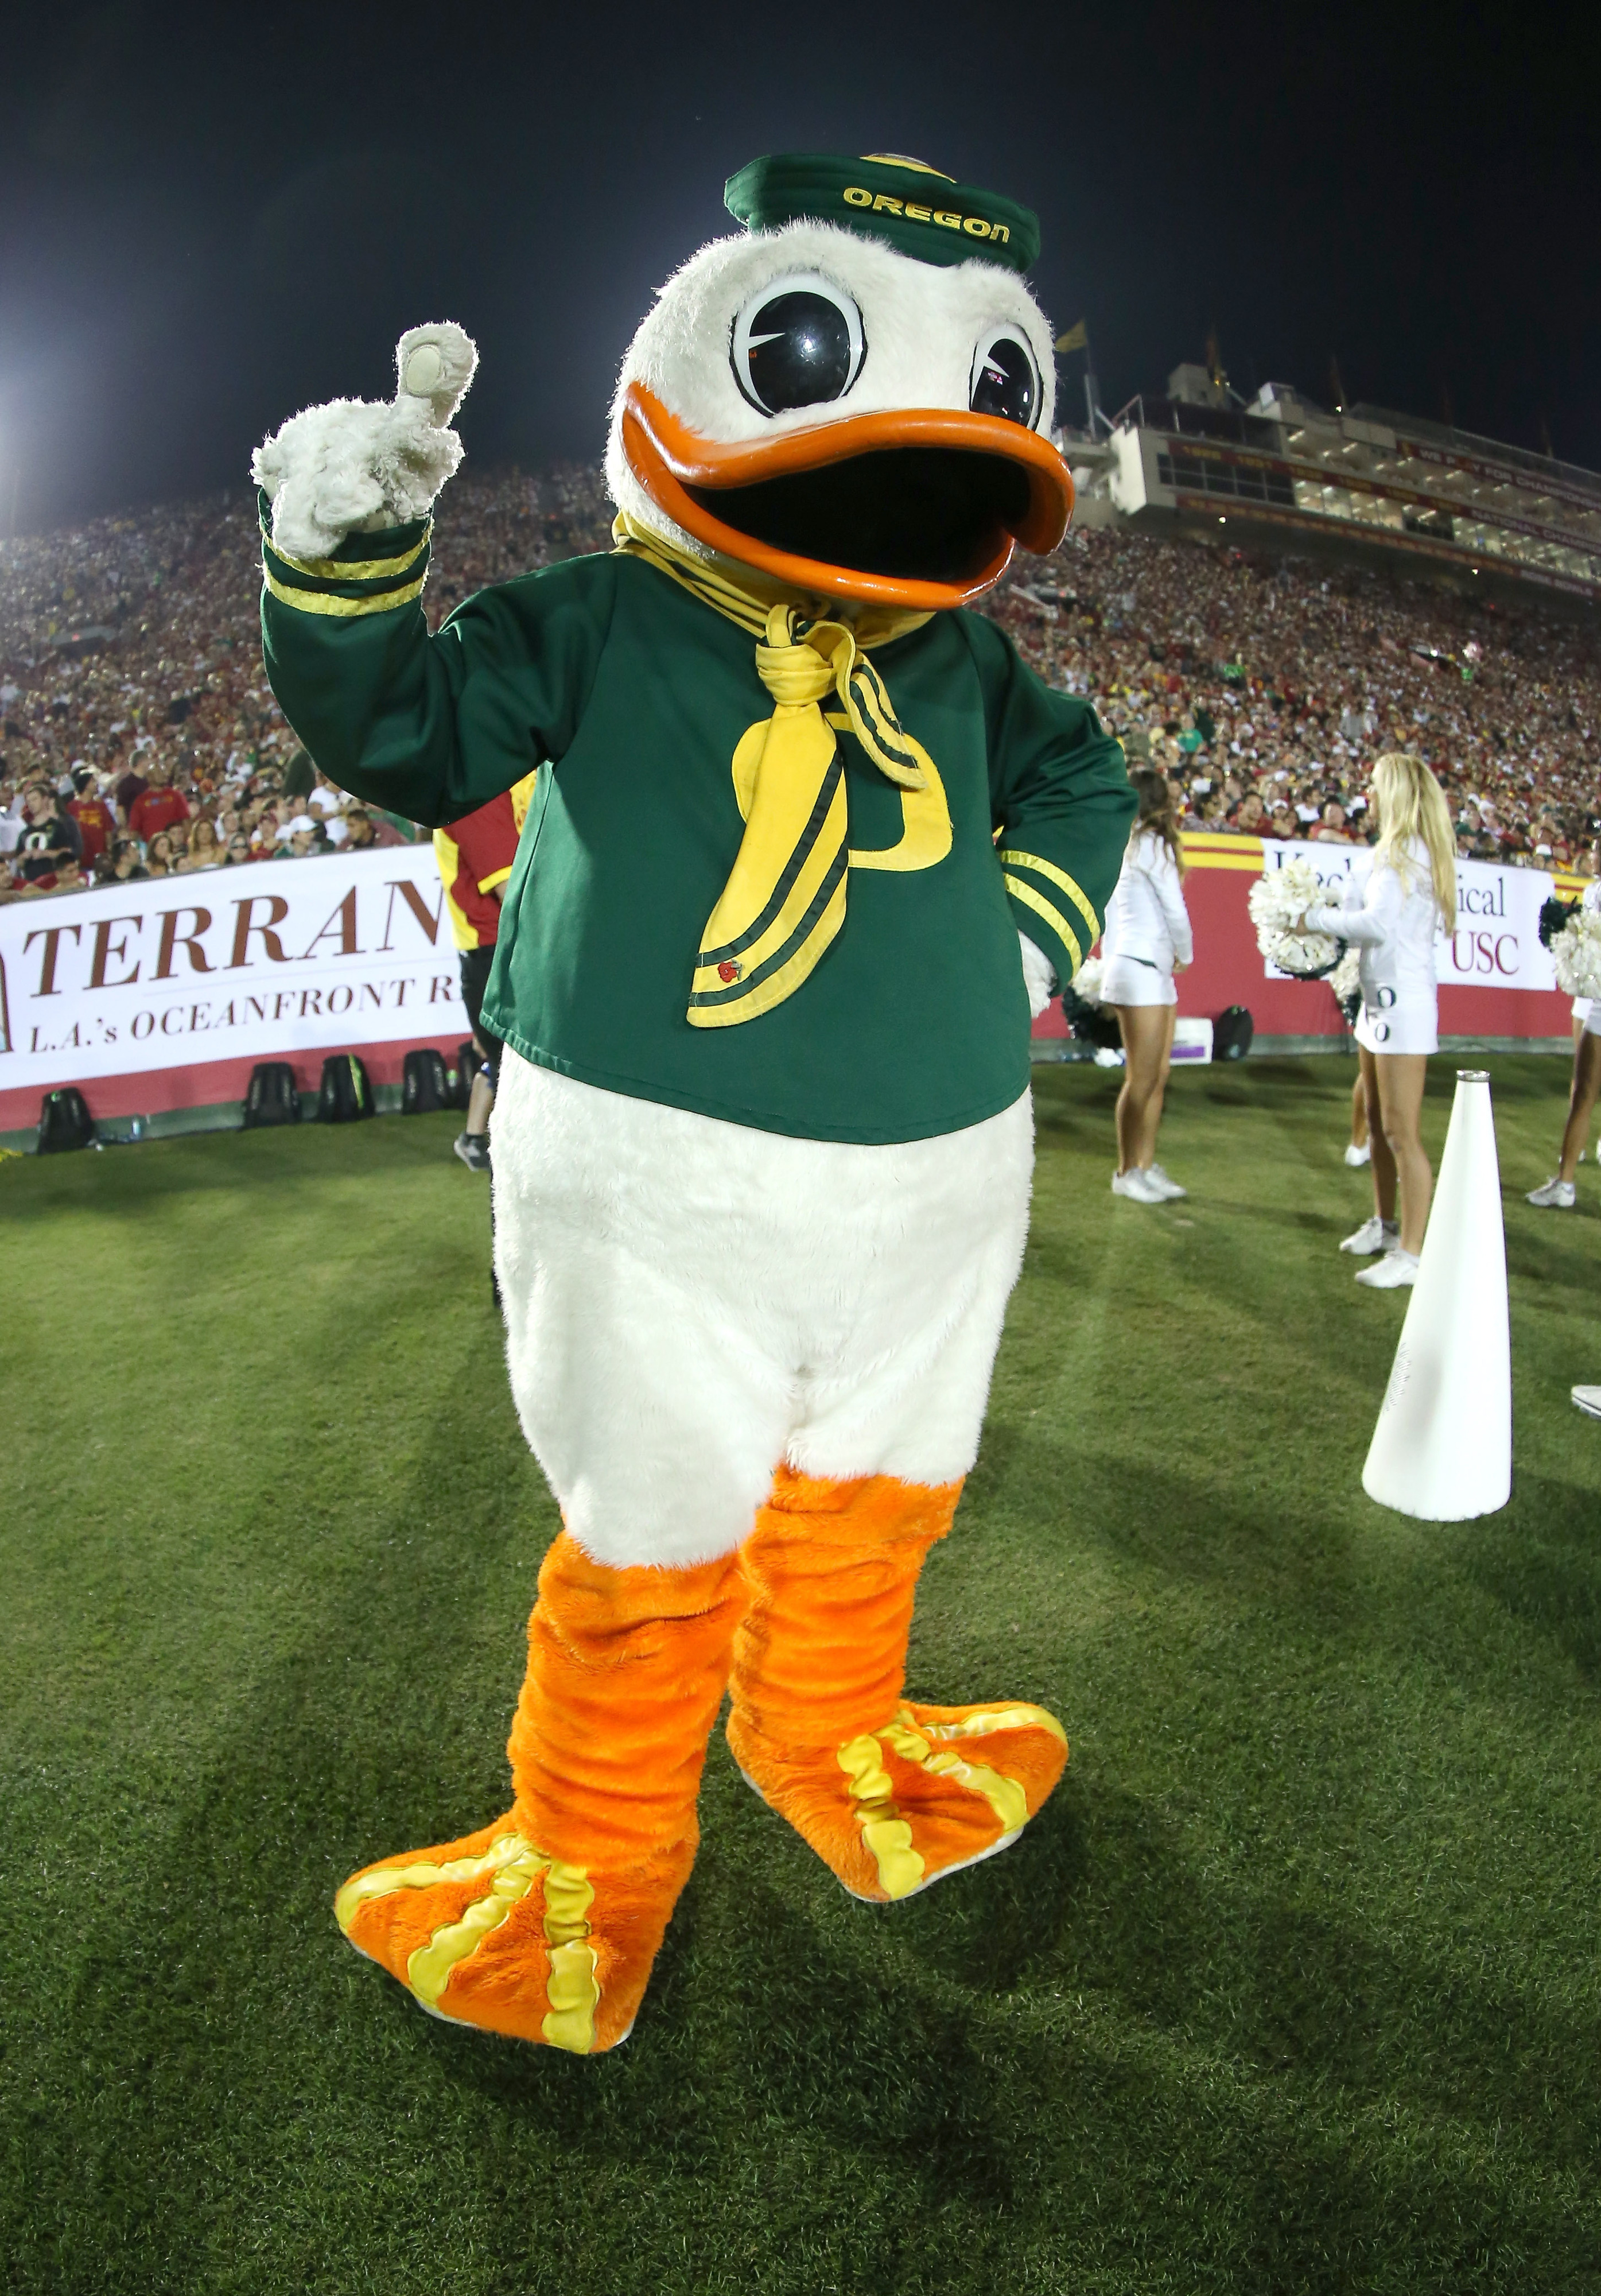 We know who the Duck thinks is the best team in the country